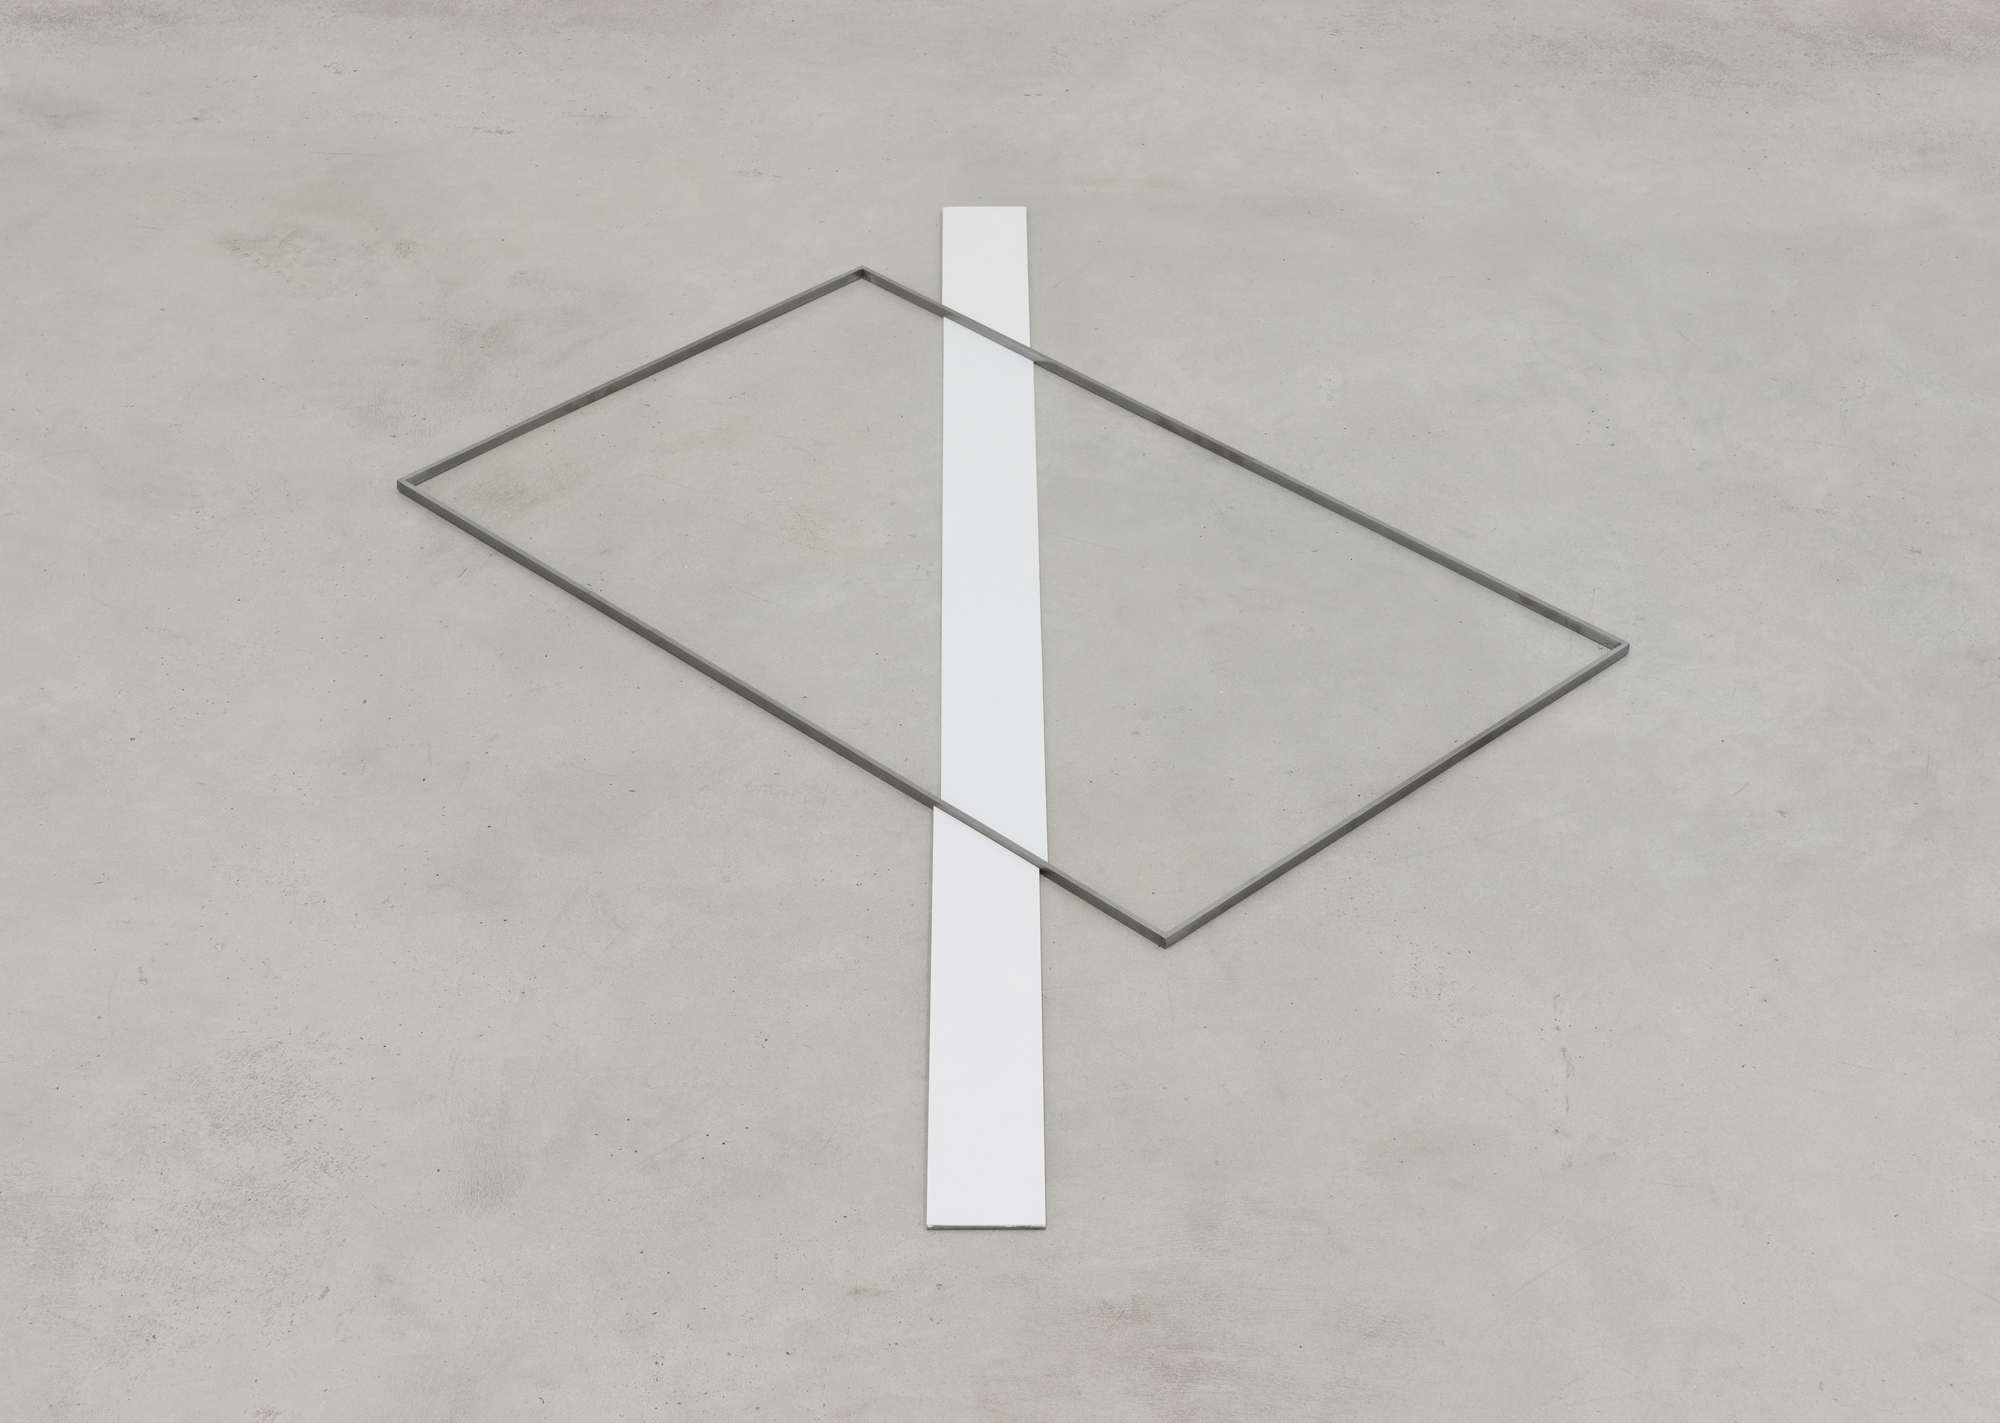 Inaccurate Line, painted iron, wax on the floor, 1 x 146 x 105 cm, 2015